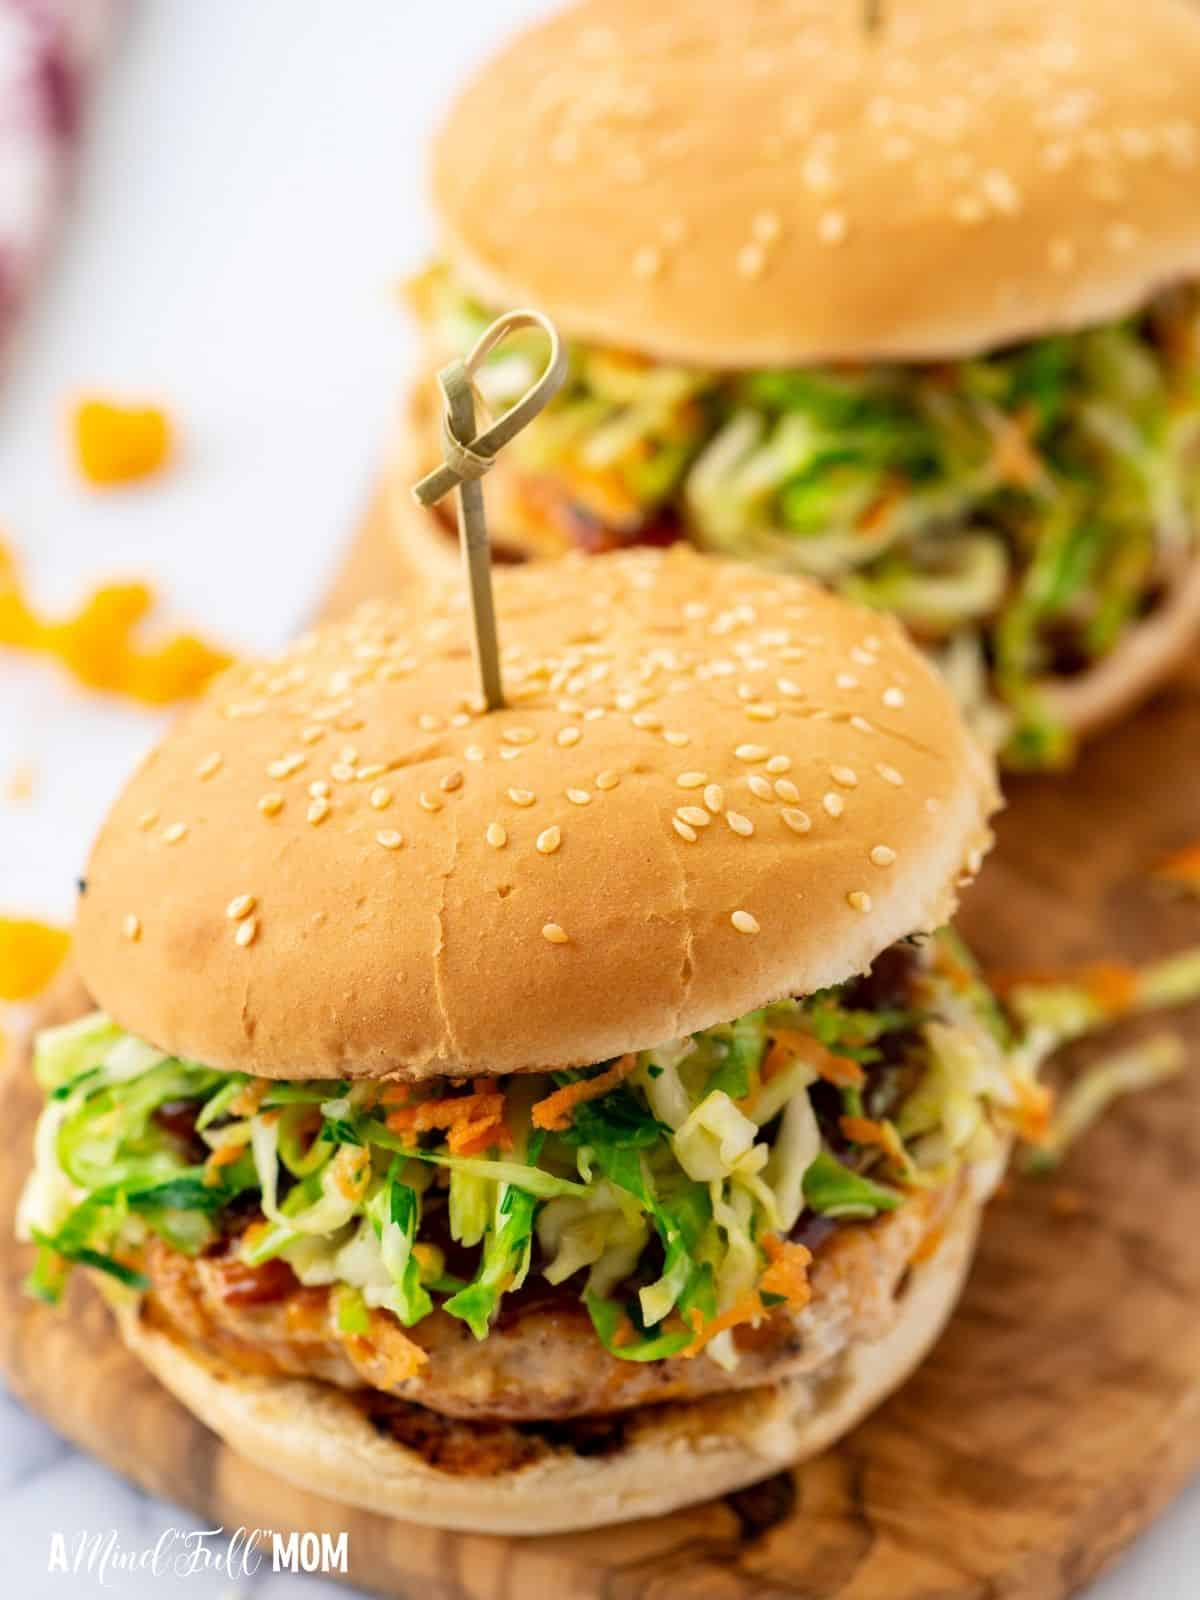 Two chicken burgers topped with coleslaw on wooden cutting board.